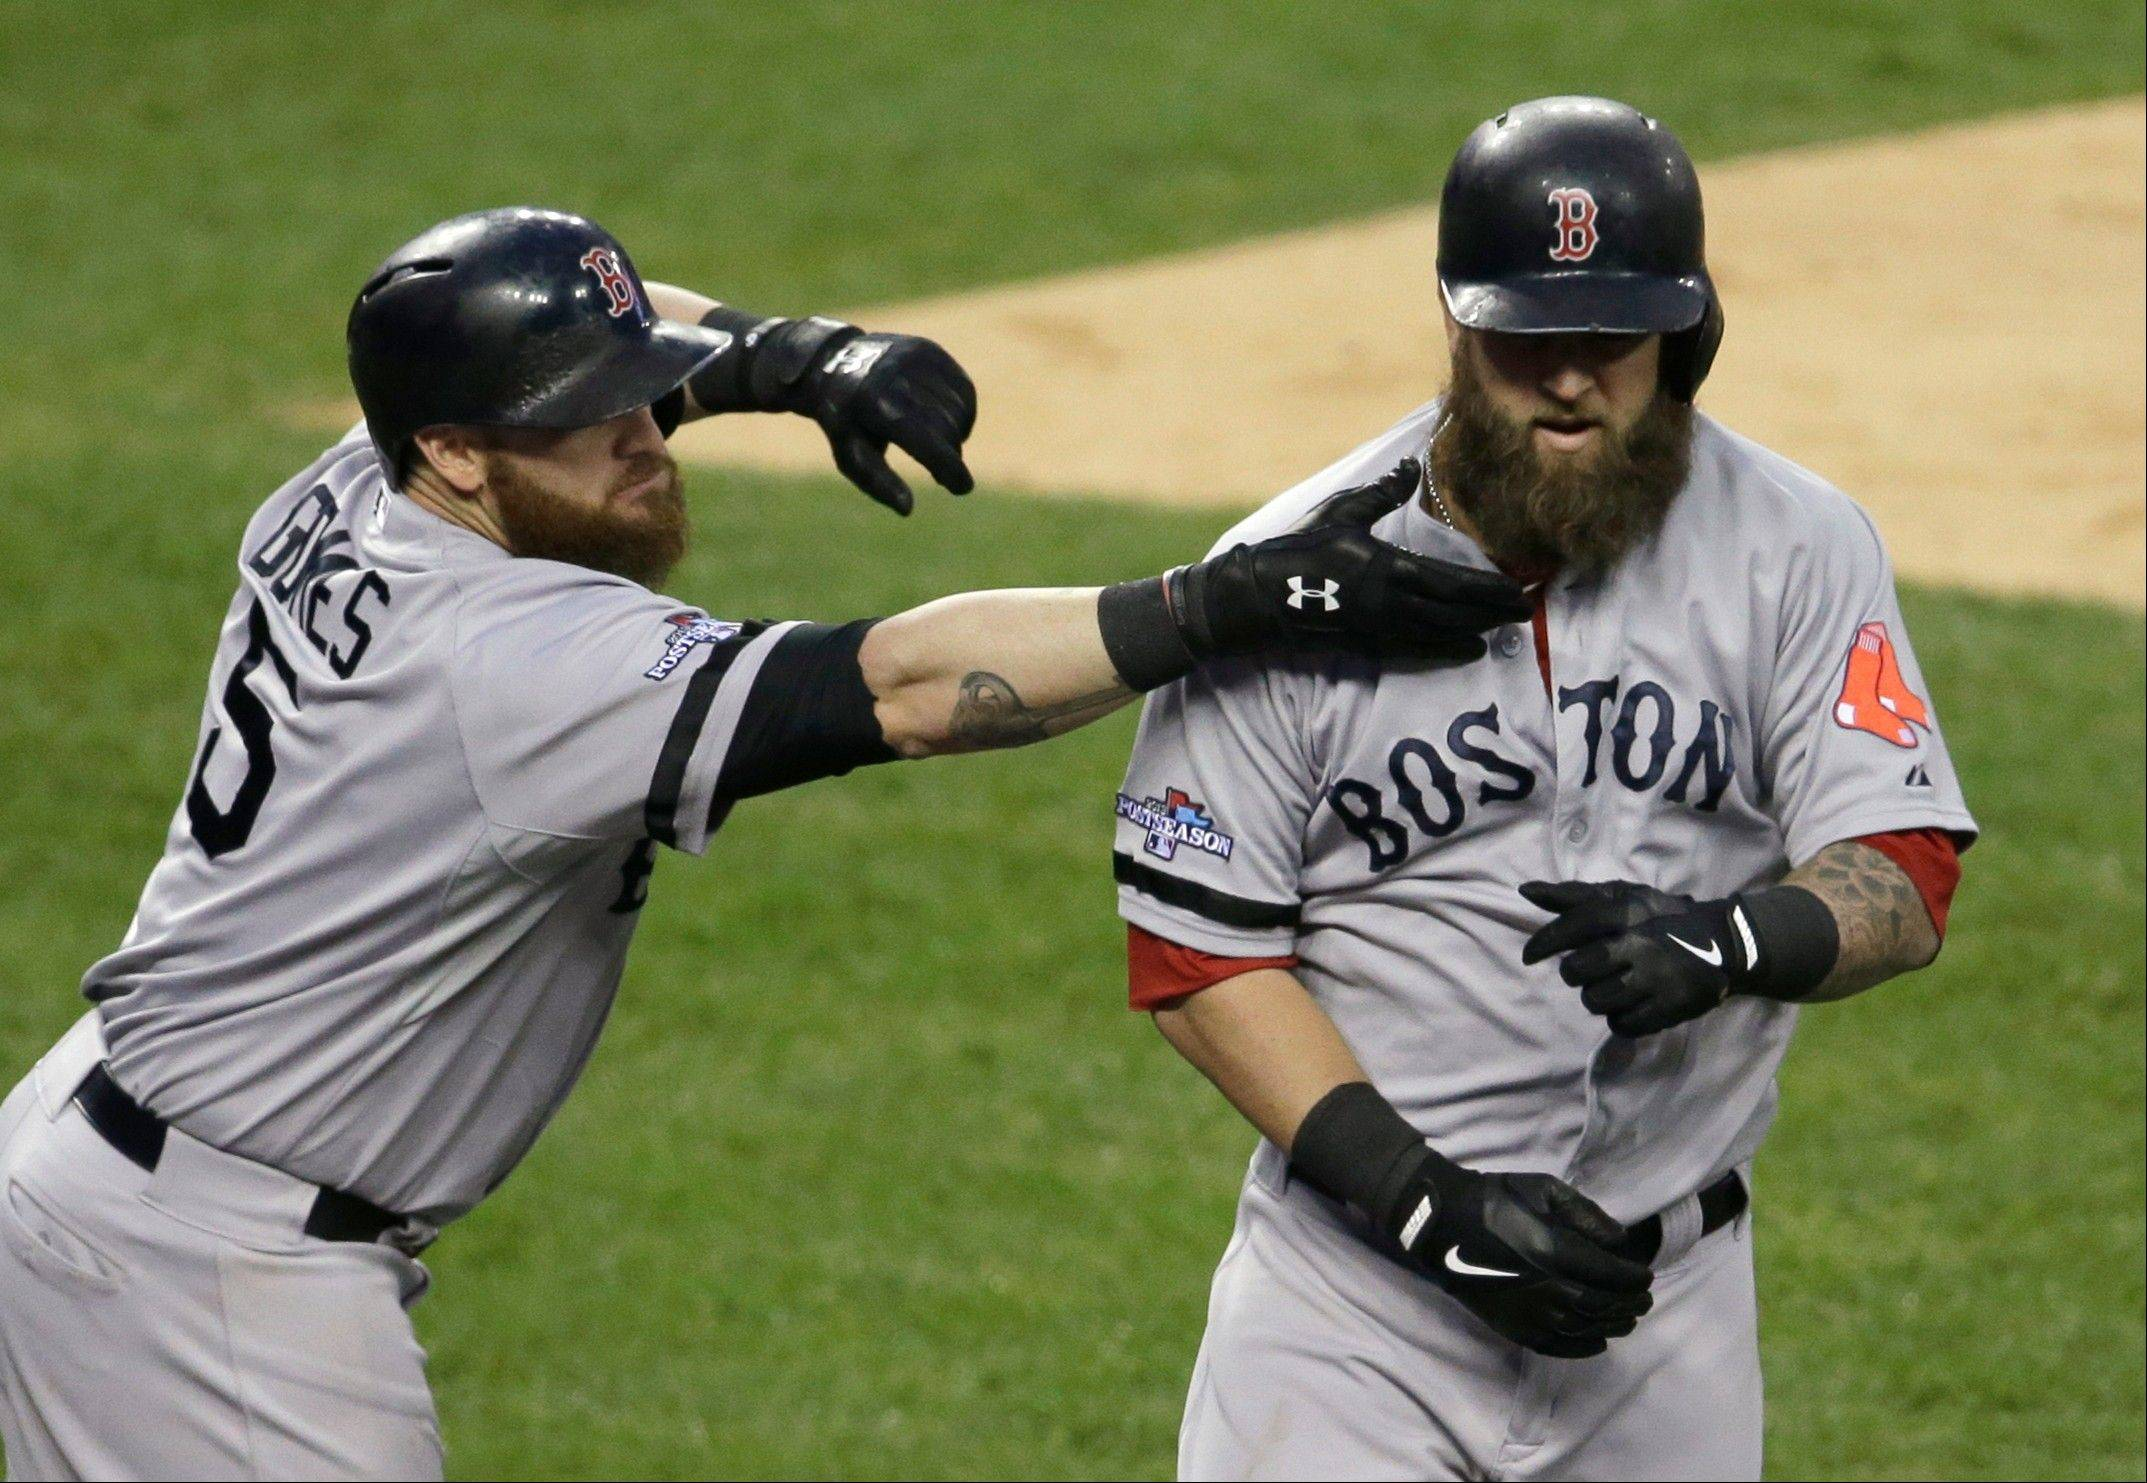 Boston�s Jonny Gomes reaches to pull the beard of Mike Napoli after Napoli hits a home run in the seventh inning during Game 3 of the American League Championship Series Tuesday in Detroit.